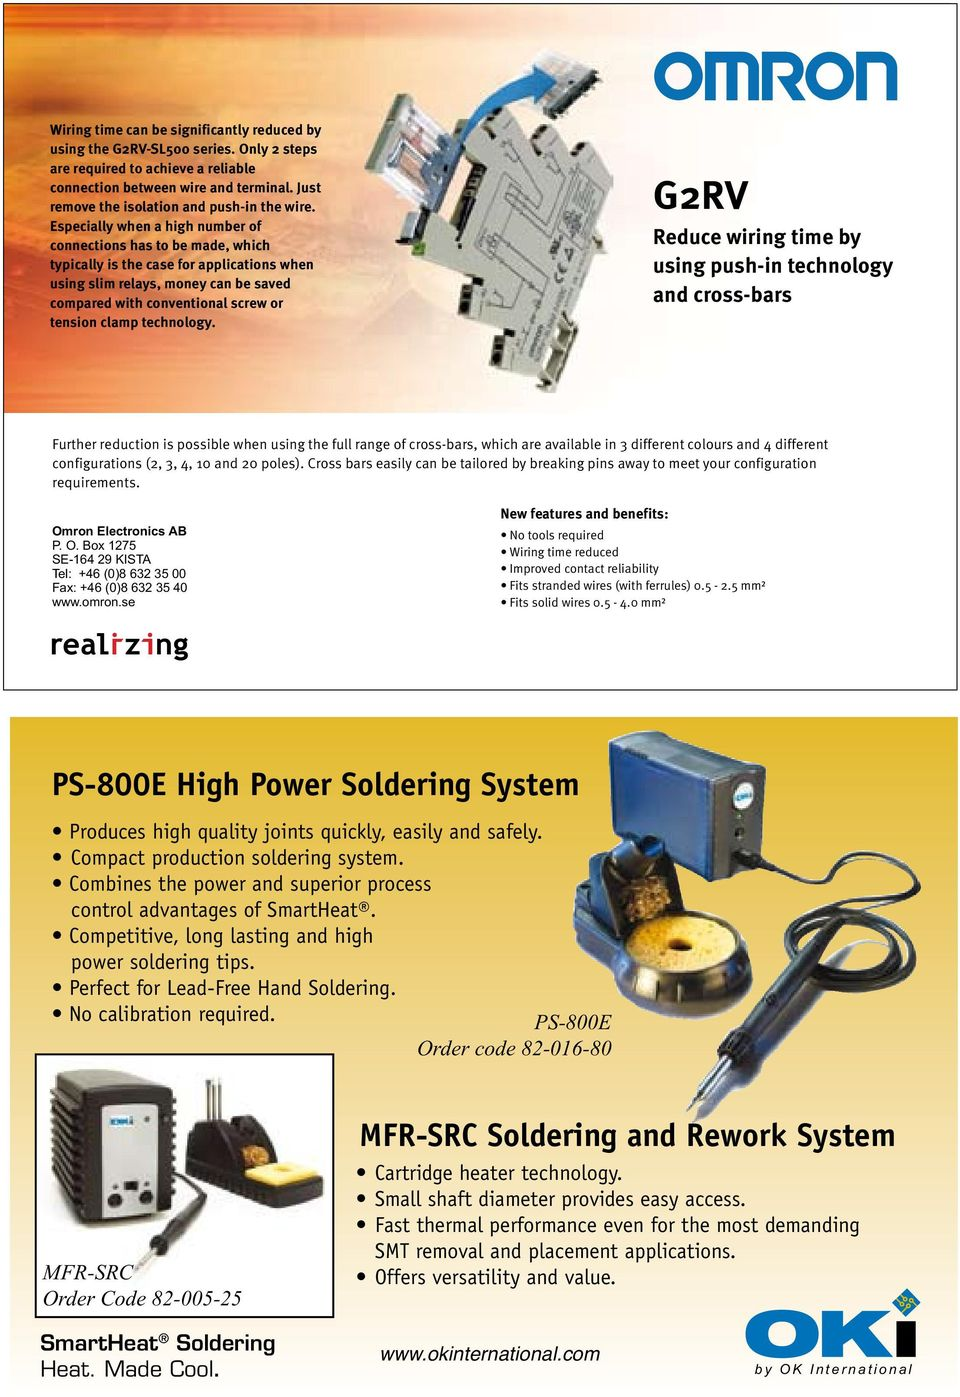 No calibration required. PS-800E Order code 82-016-80 MFR-SRC Order Code 82-005-25 MFR-SRC Soldering and Rework System Cartridge heater technology.